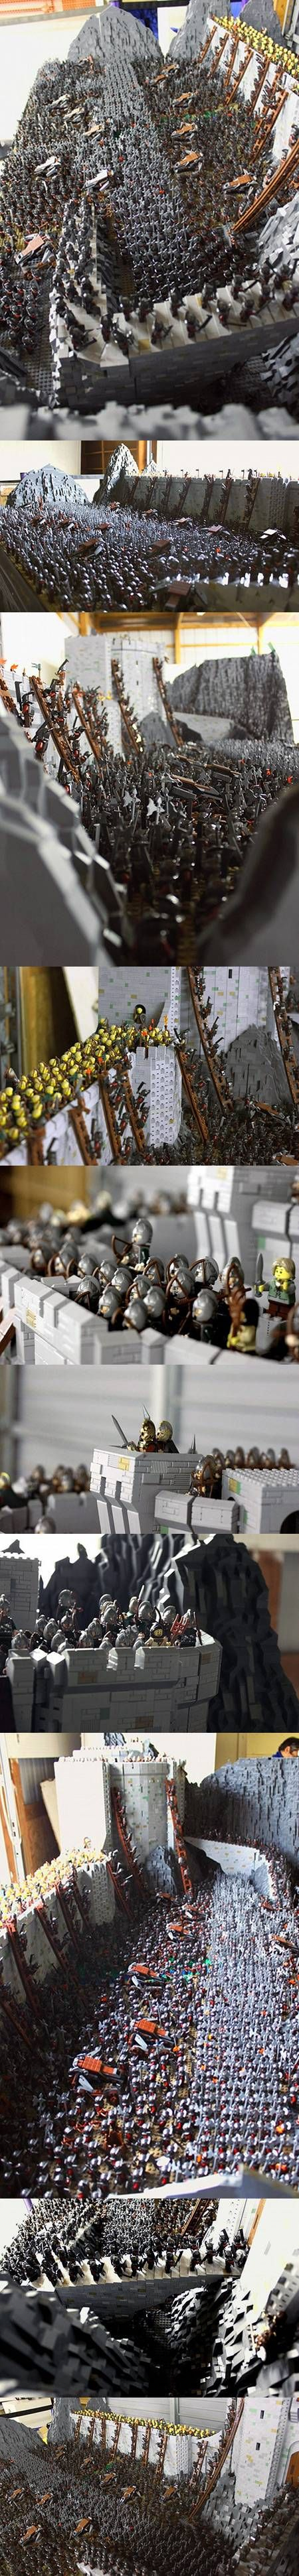 Lord of the Rings Battle of Helm's Deep Recreated with 150,000 LEGO Bricks - TechEBlog